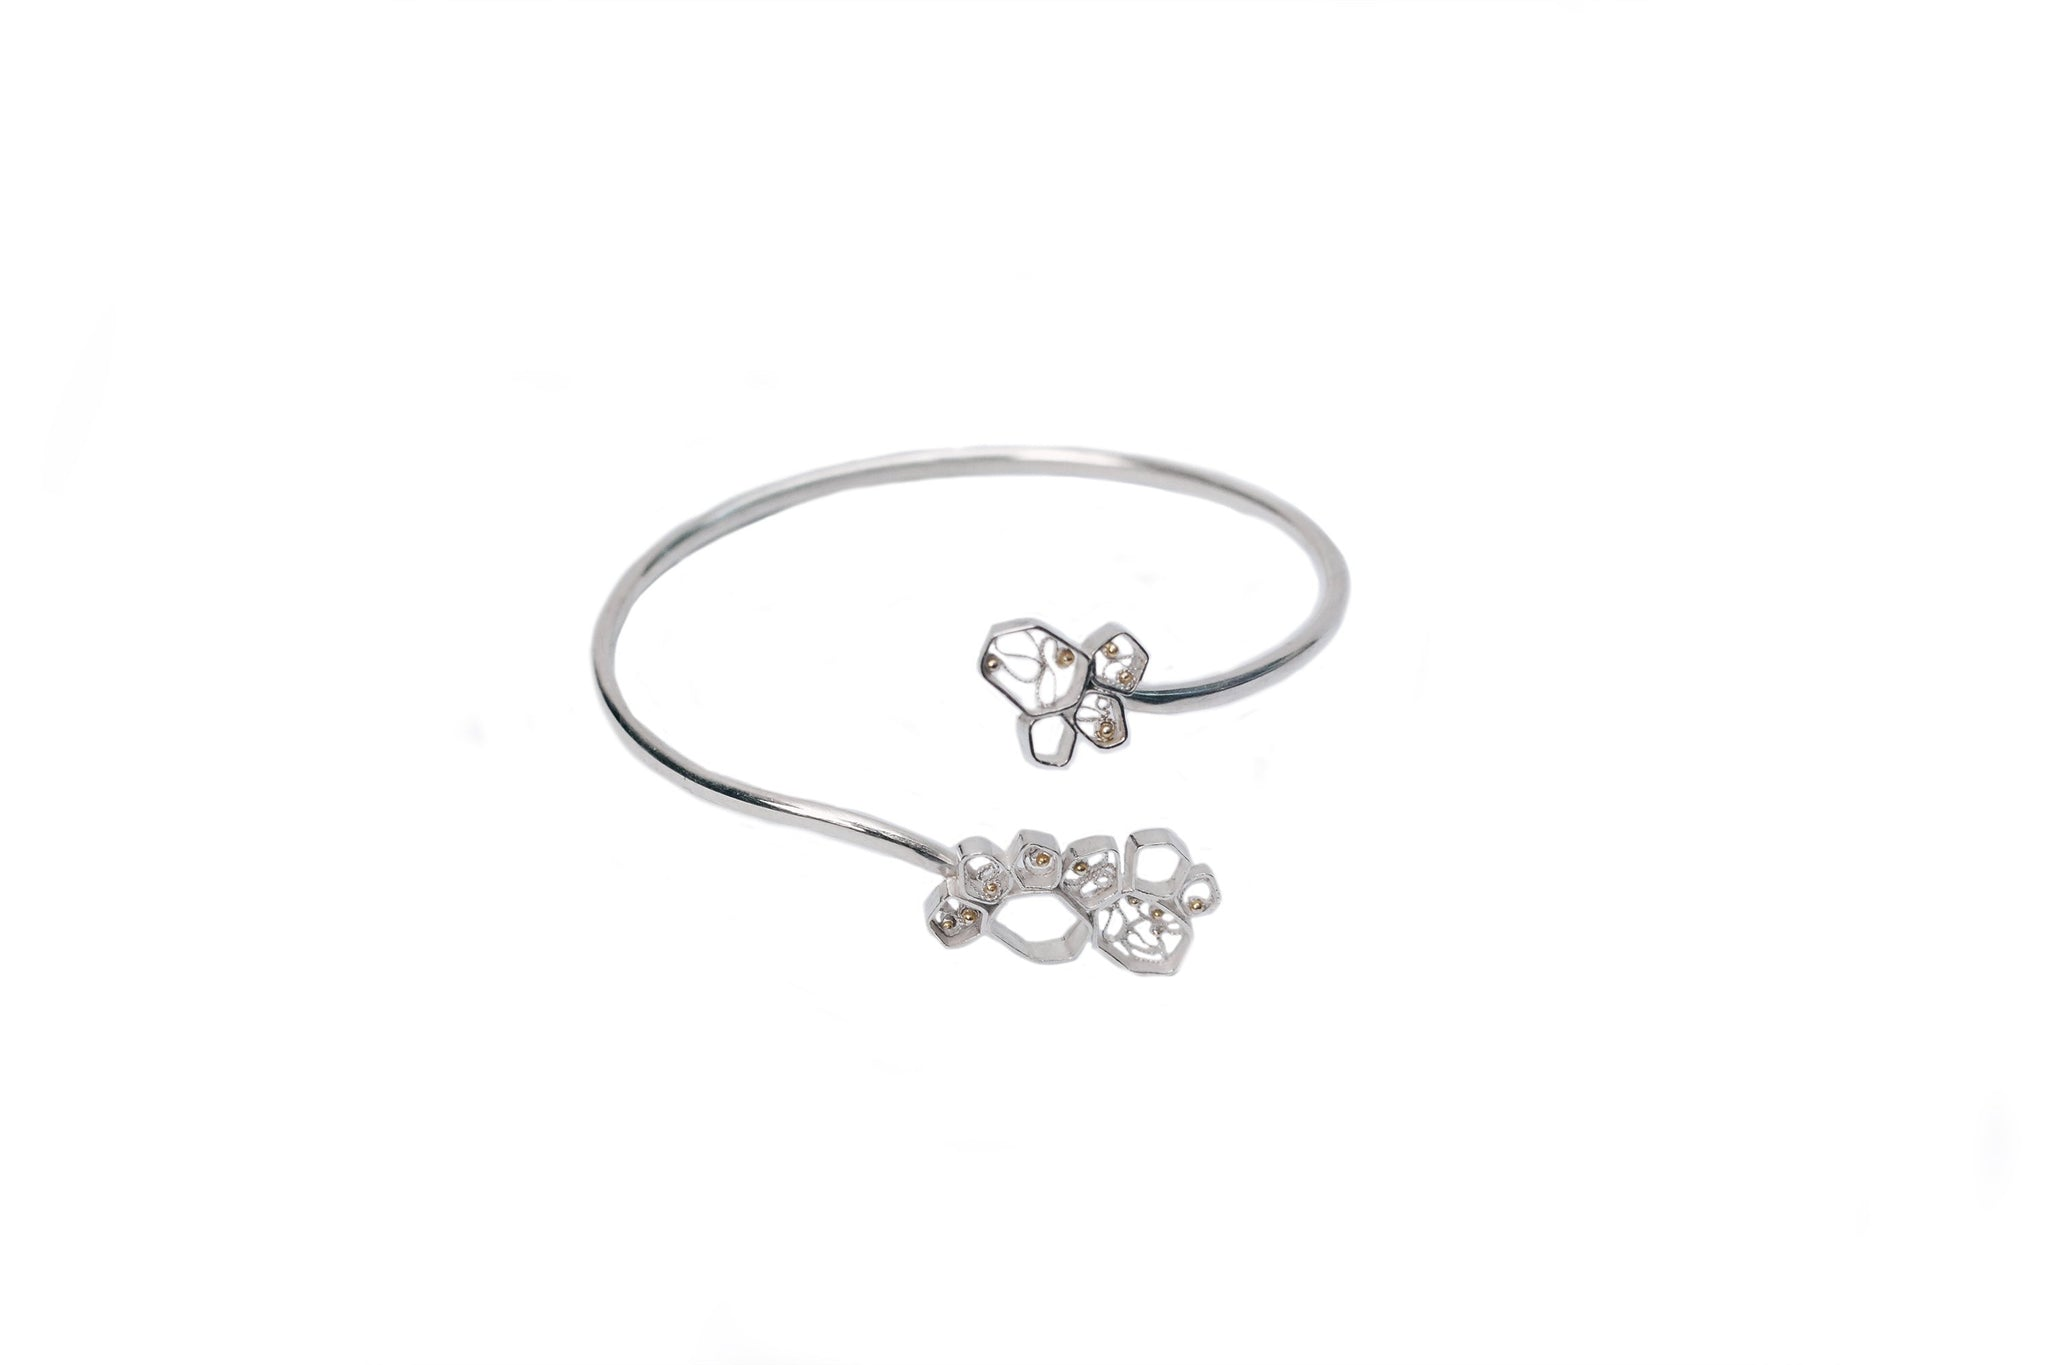 Cells Gold and Silver Bracelet, Valentina Caprini, Found By Lesetta